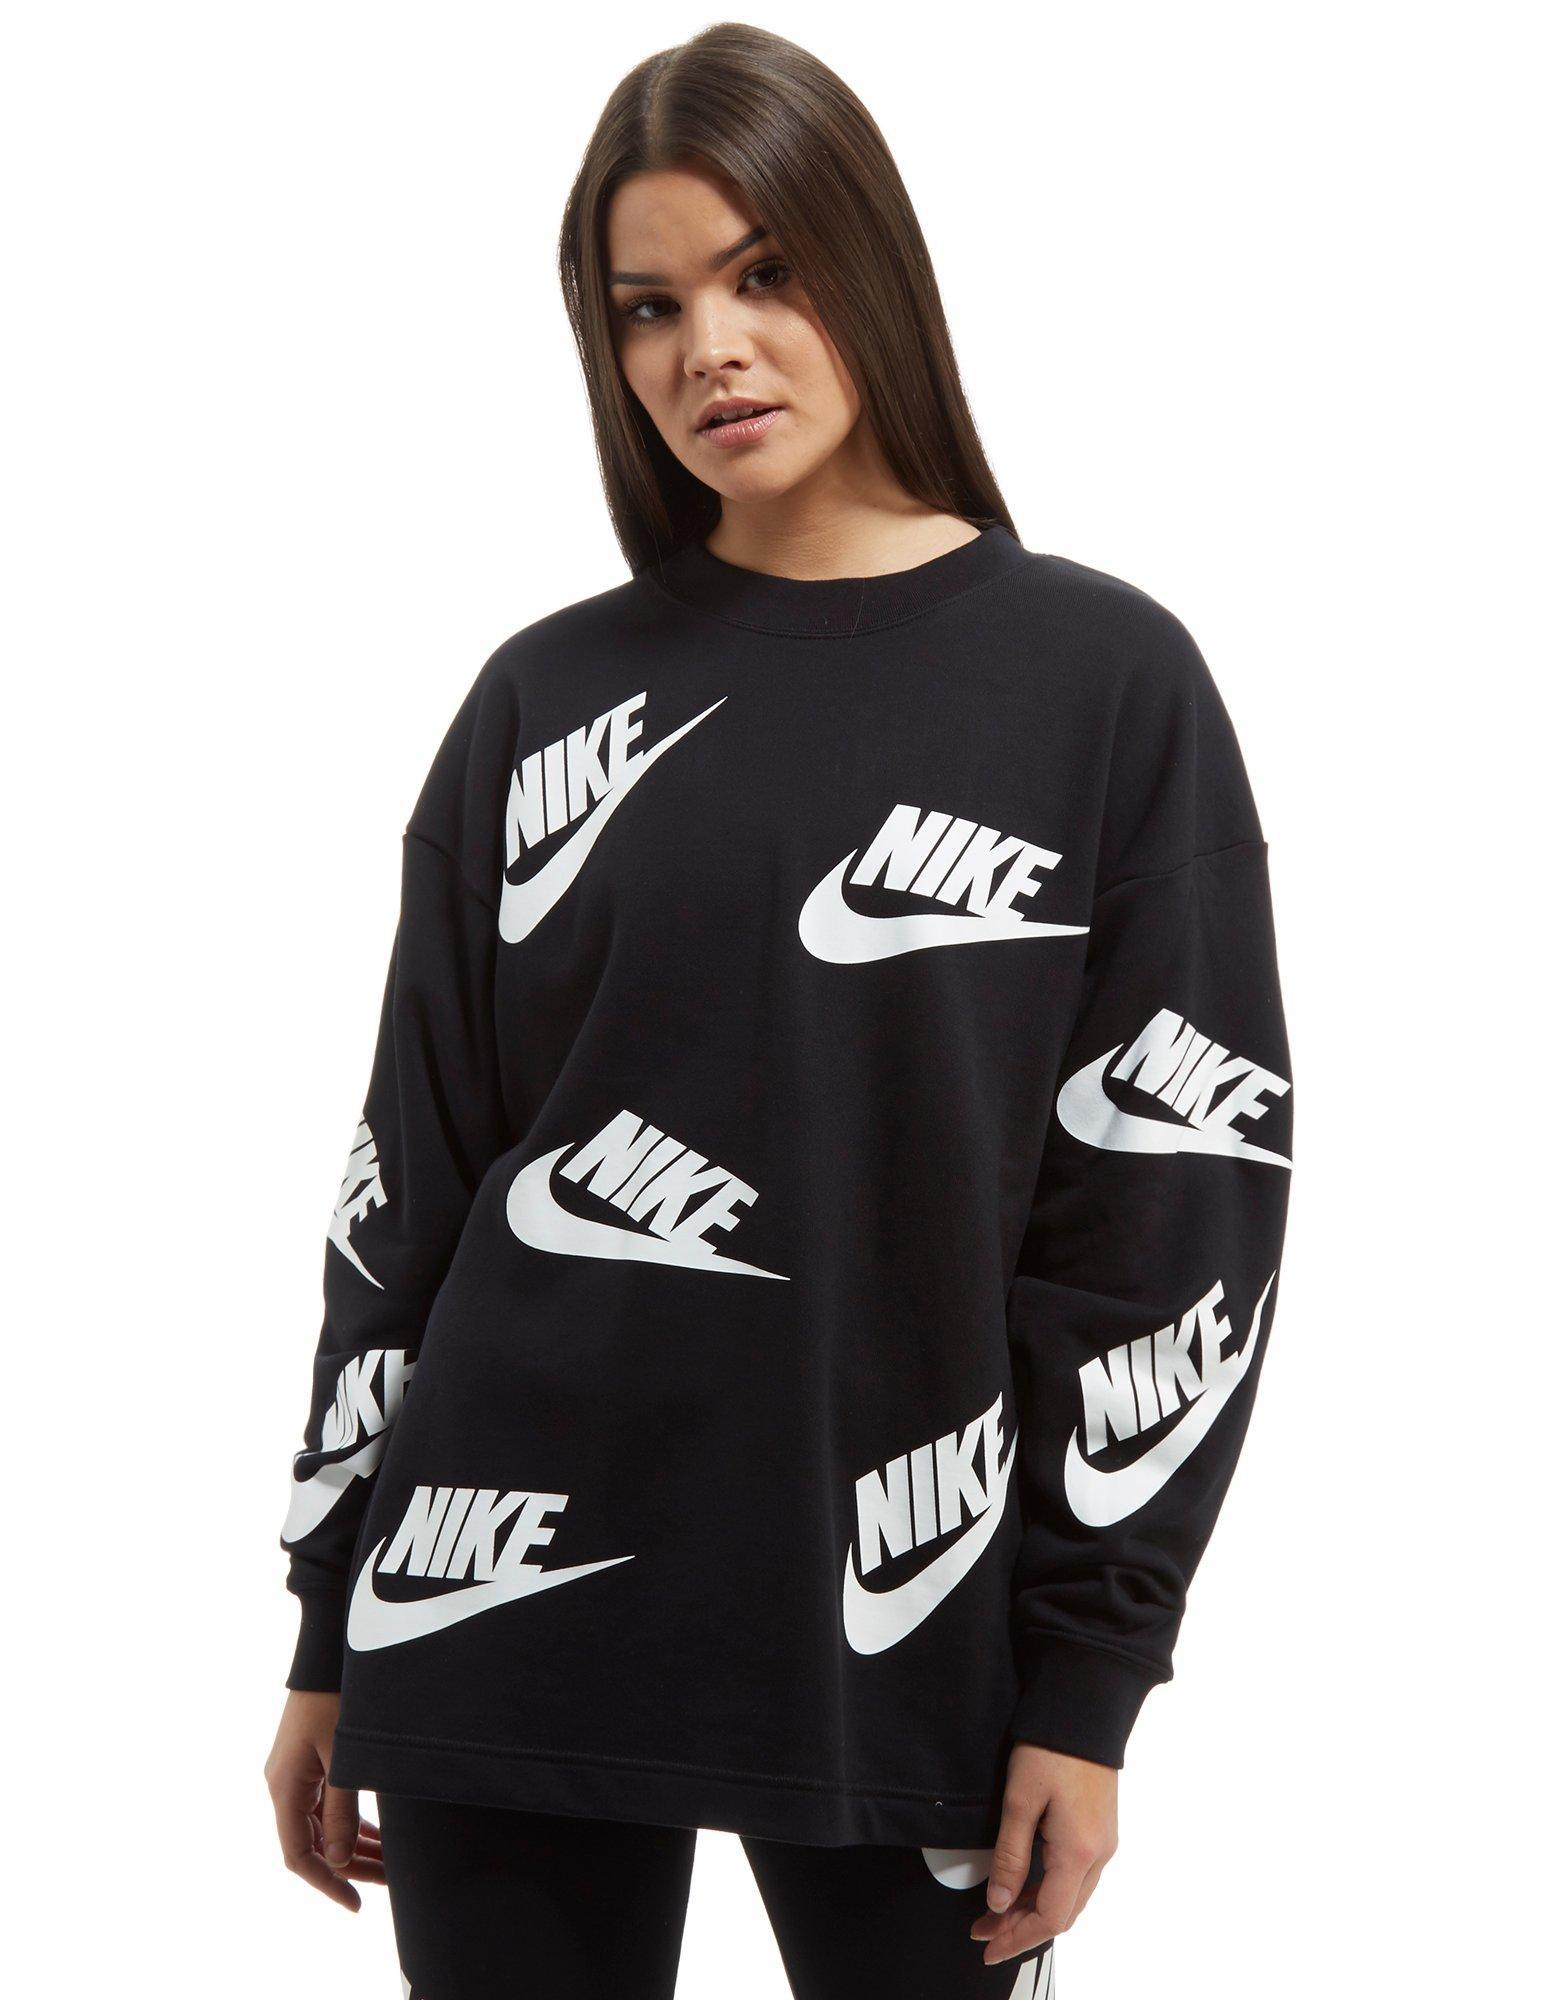 e66fd157dc Nike Black And White Striped Sweatshirt